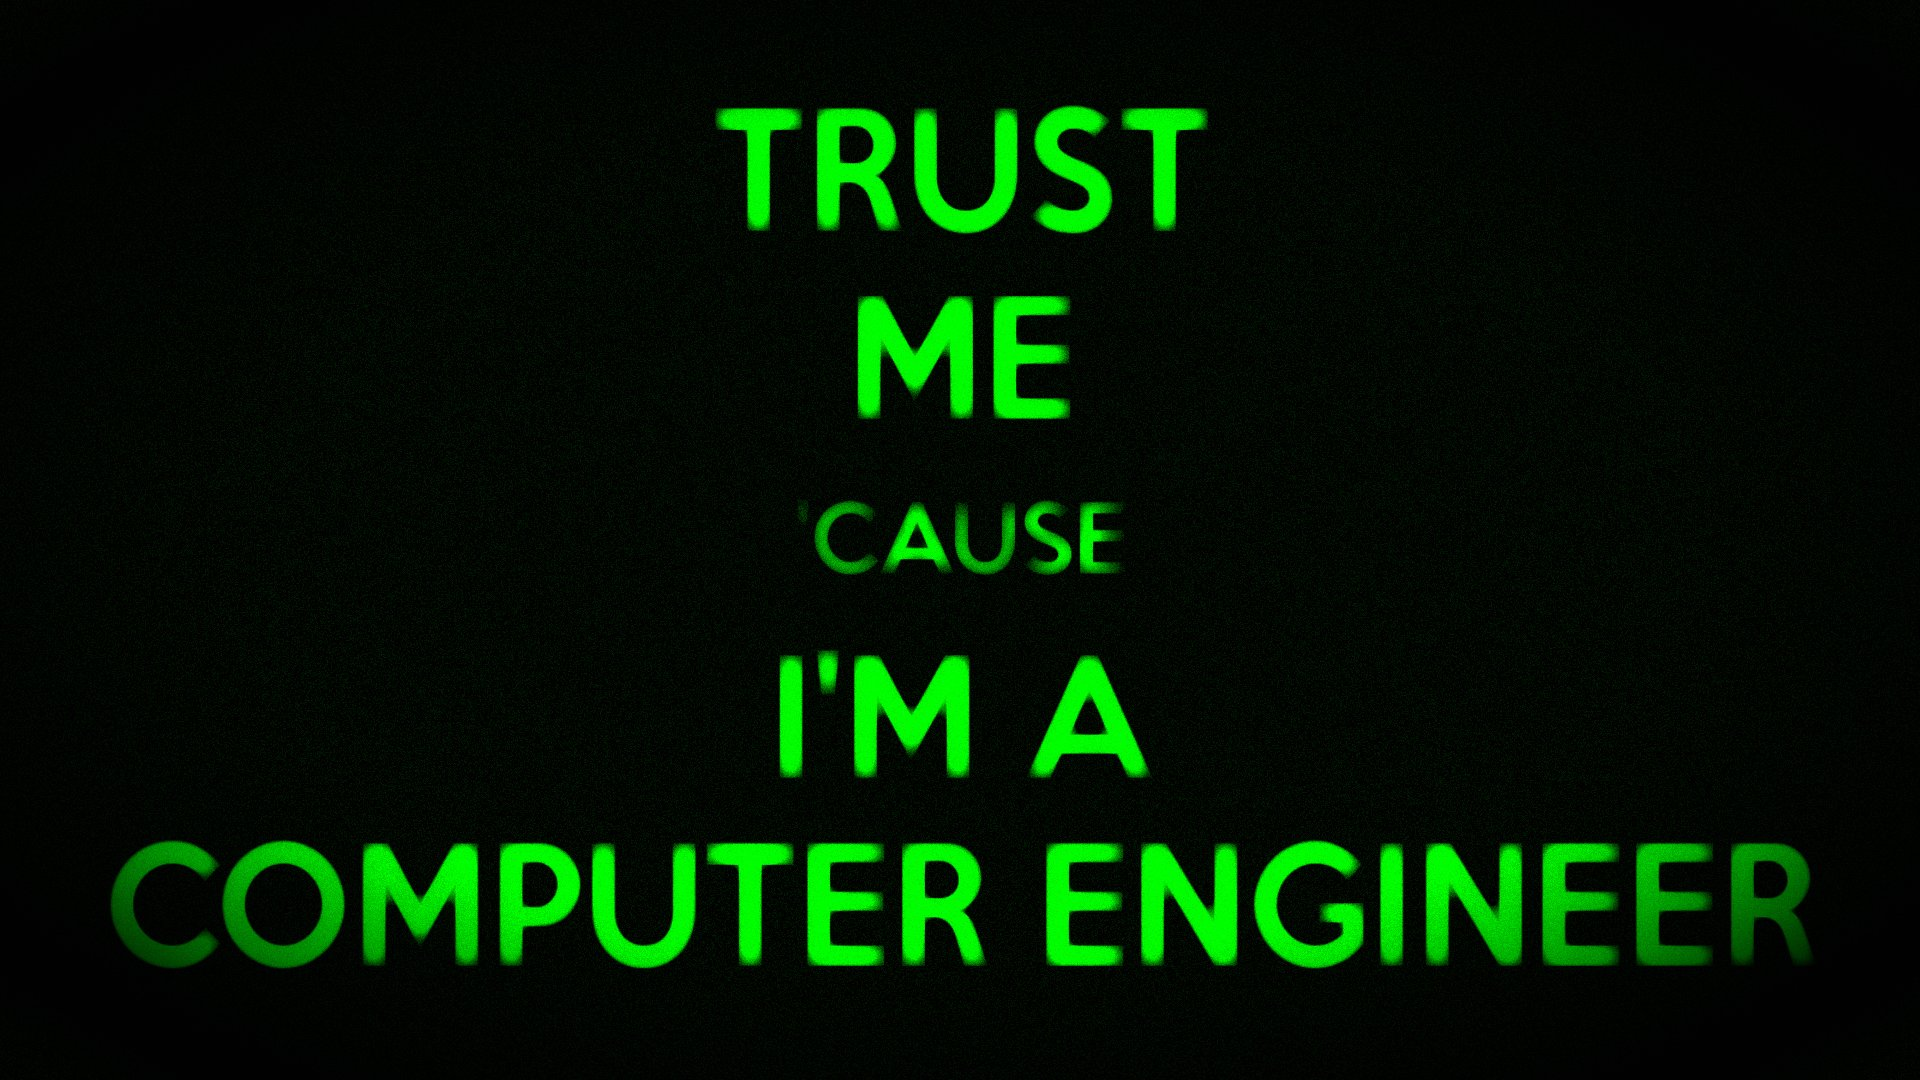 computer engineering science tech wallpaper background 1920x1080